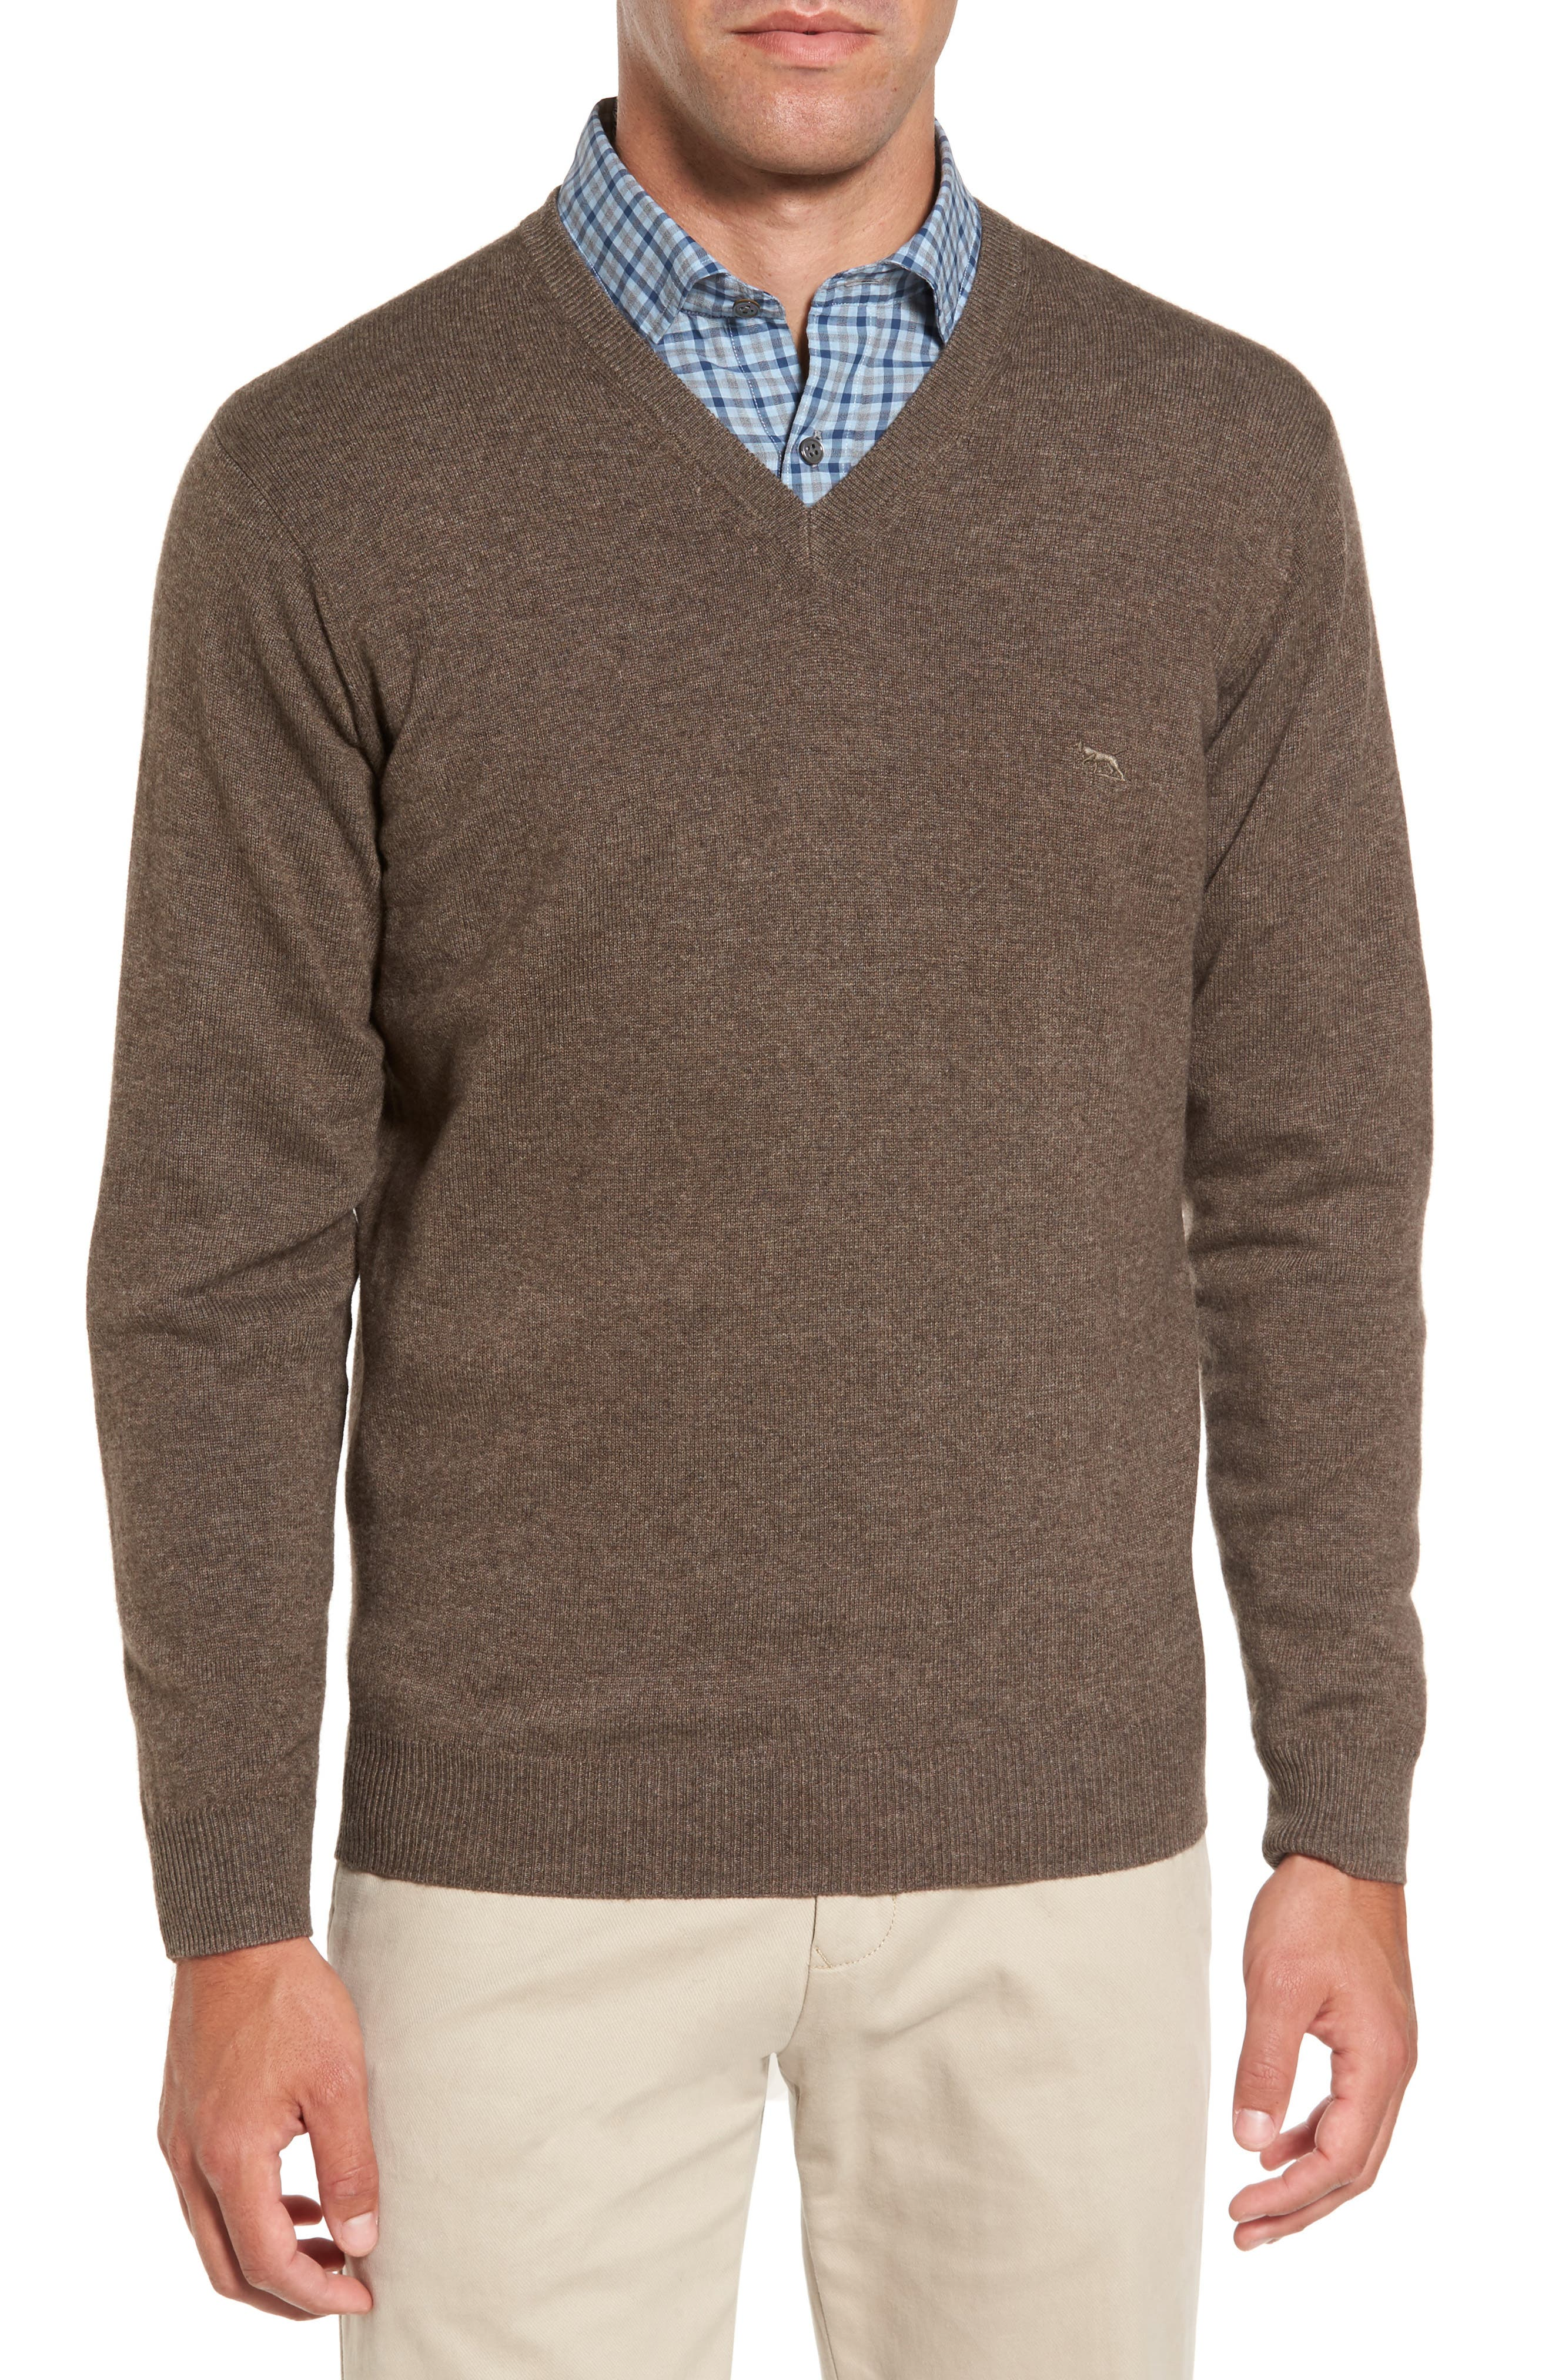 'Inchbonnie' Wool & Cashmere V-Neck Sweater,                         Main,                         color, 218